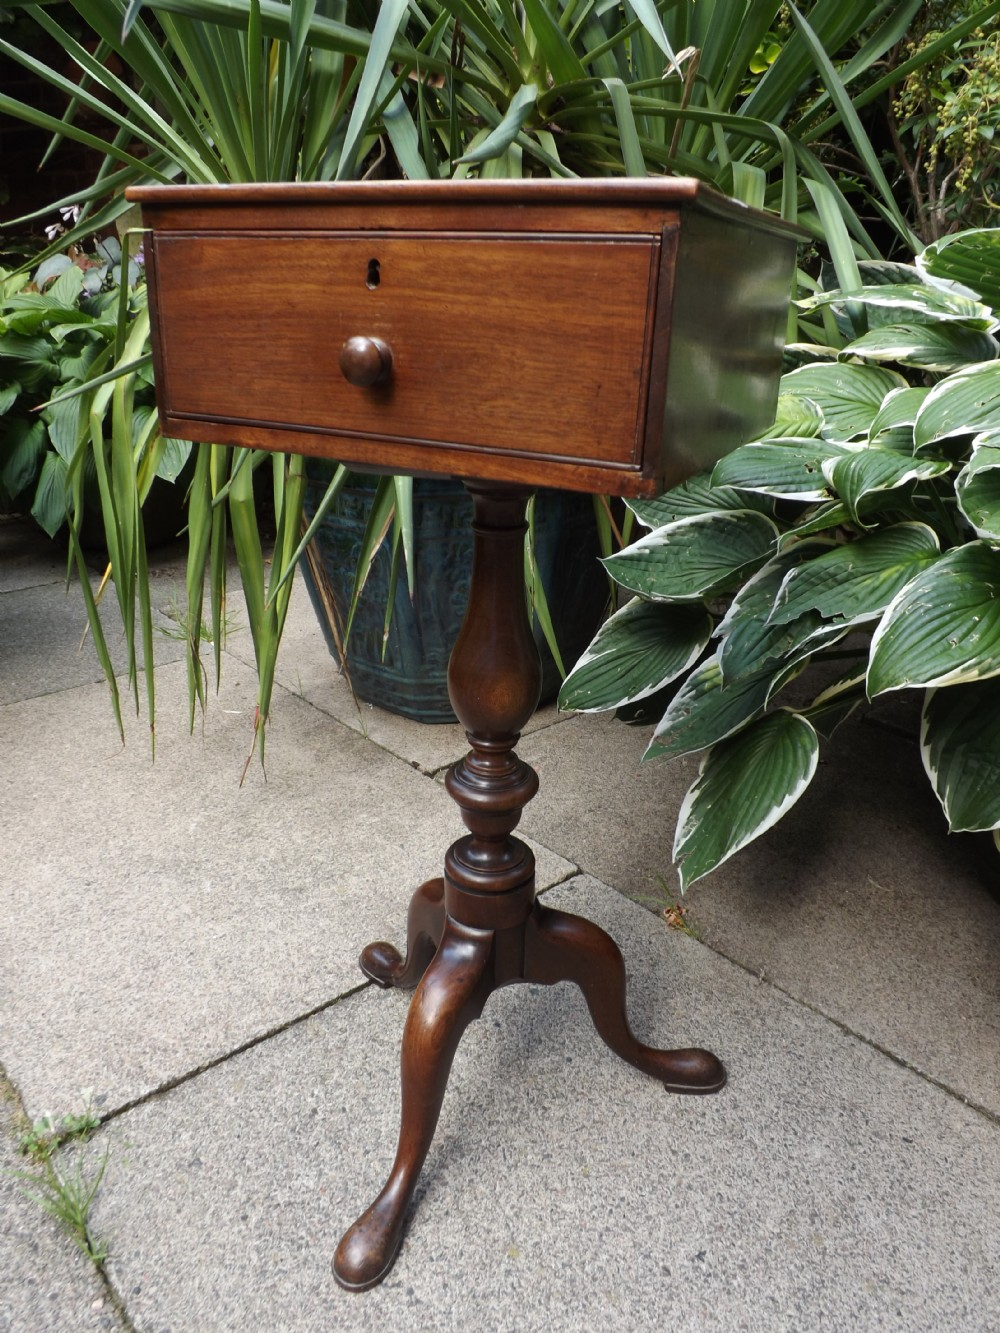 late c18th george iii period mahogany tripodbase table of unusual format